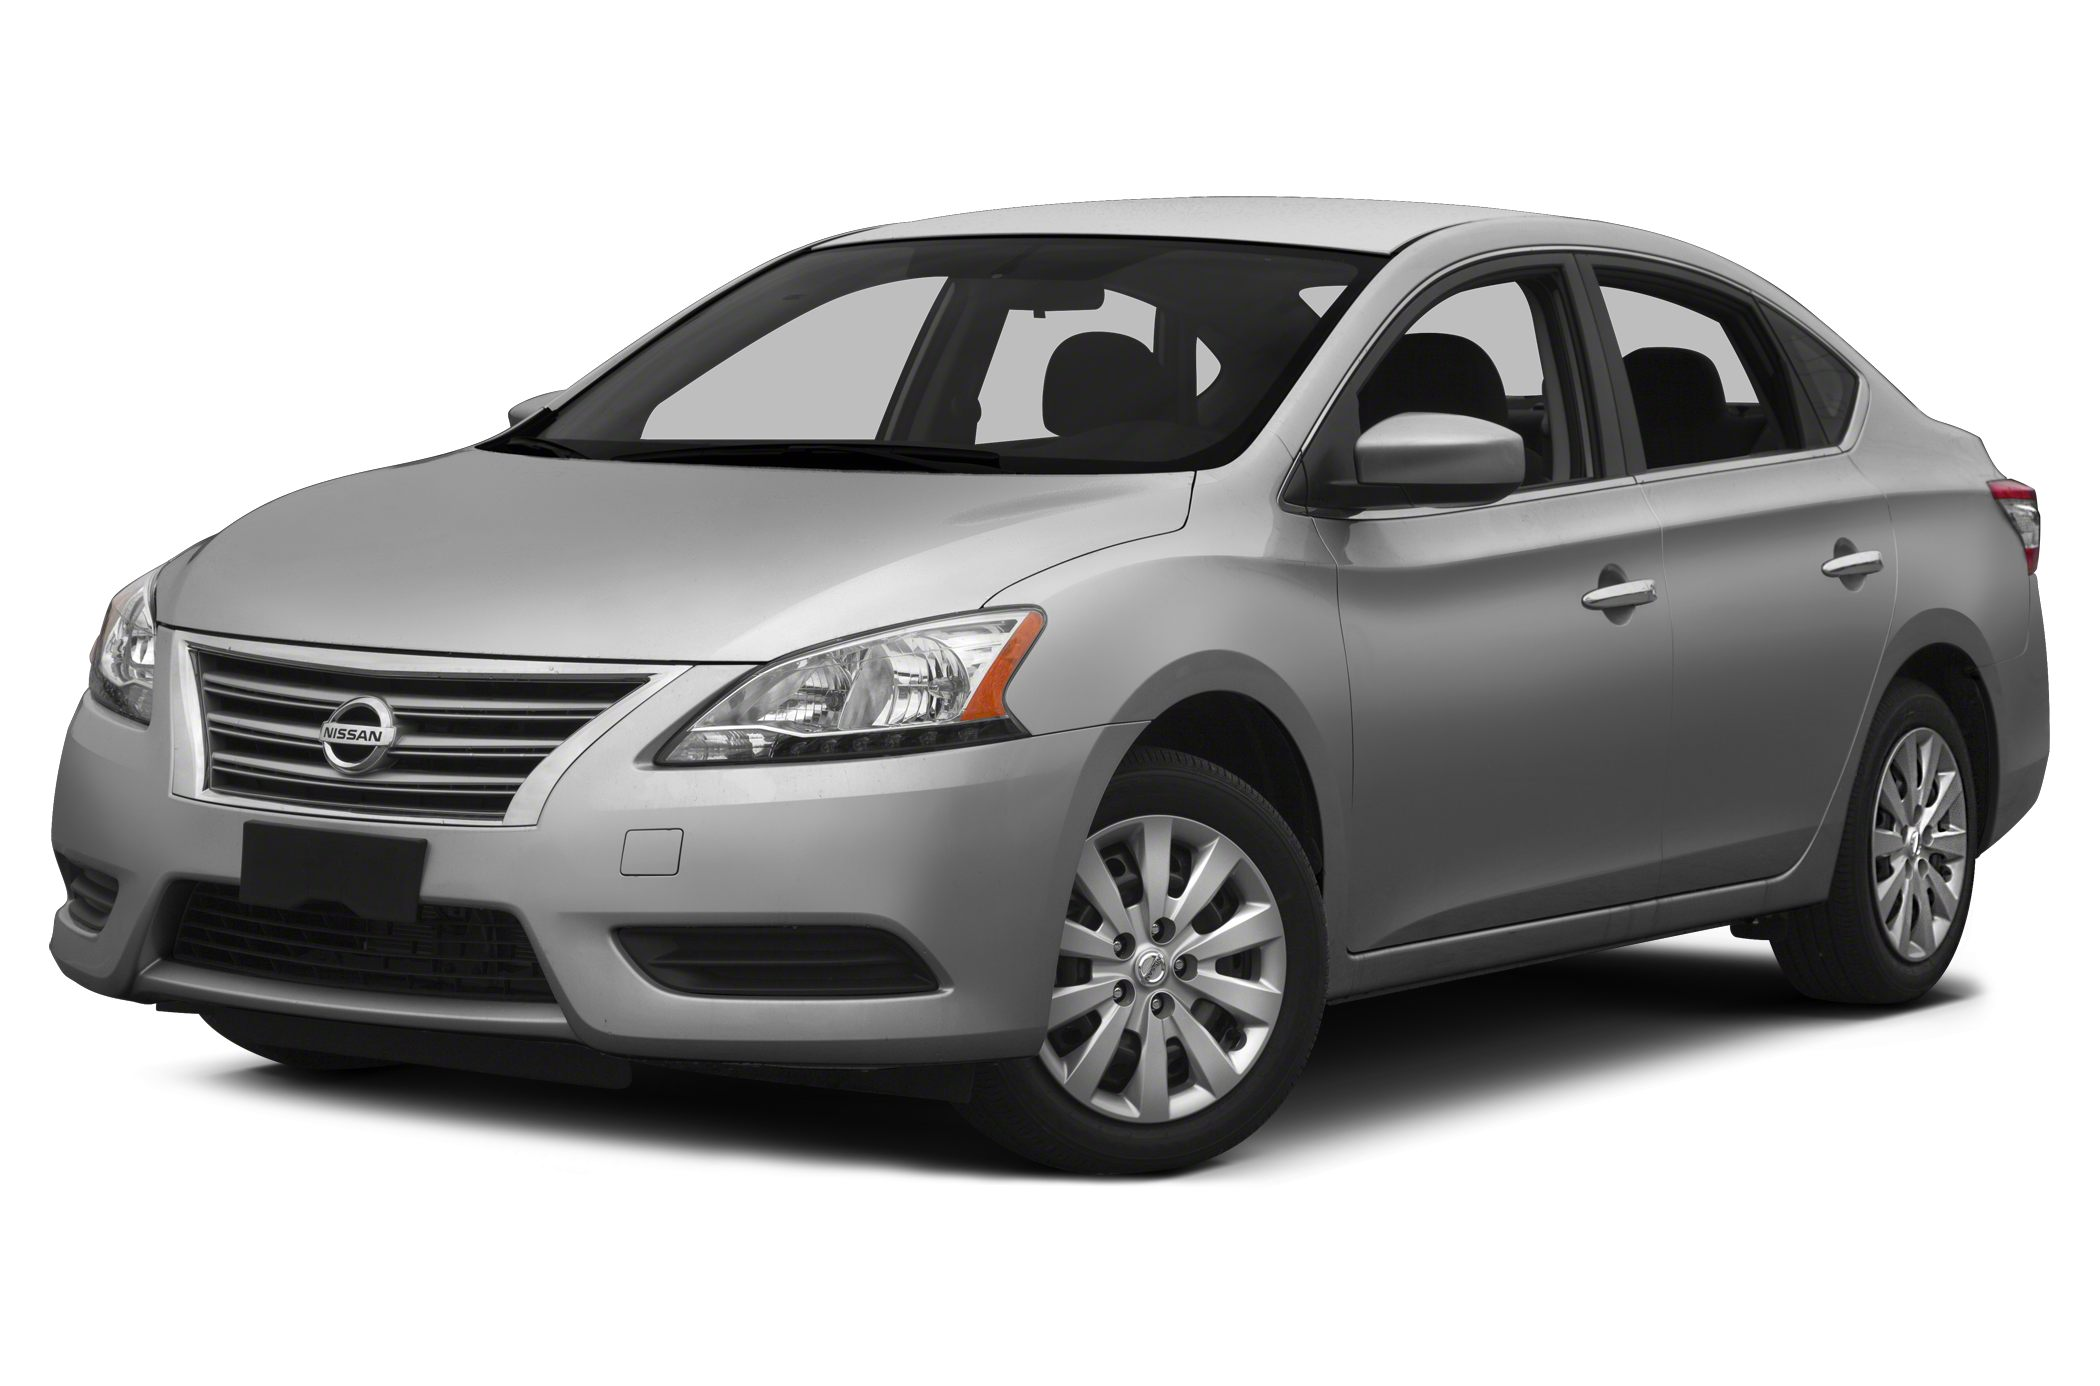 2014 Nissan Sentra SV Sedan for sale in Pensacola for $18,735 with 6 miles.